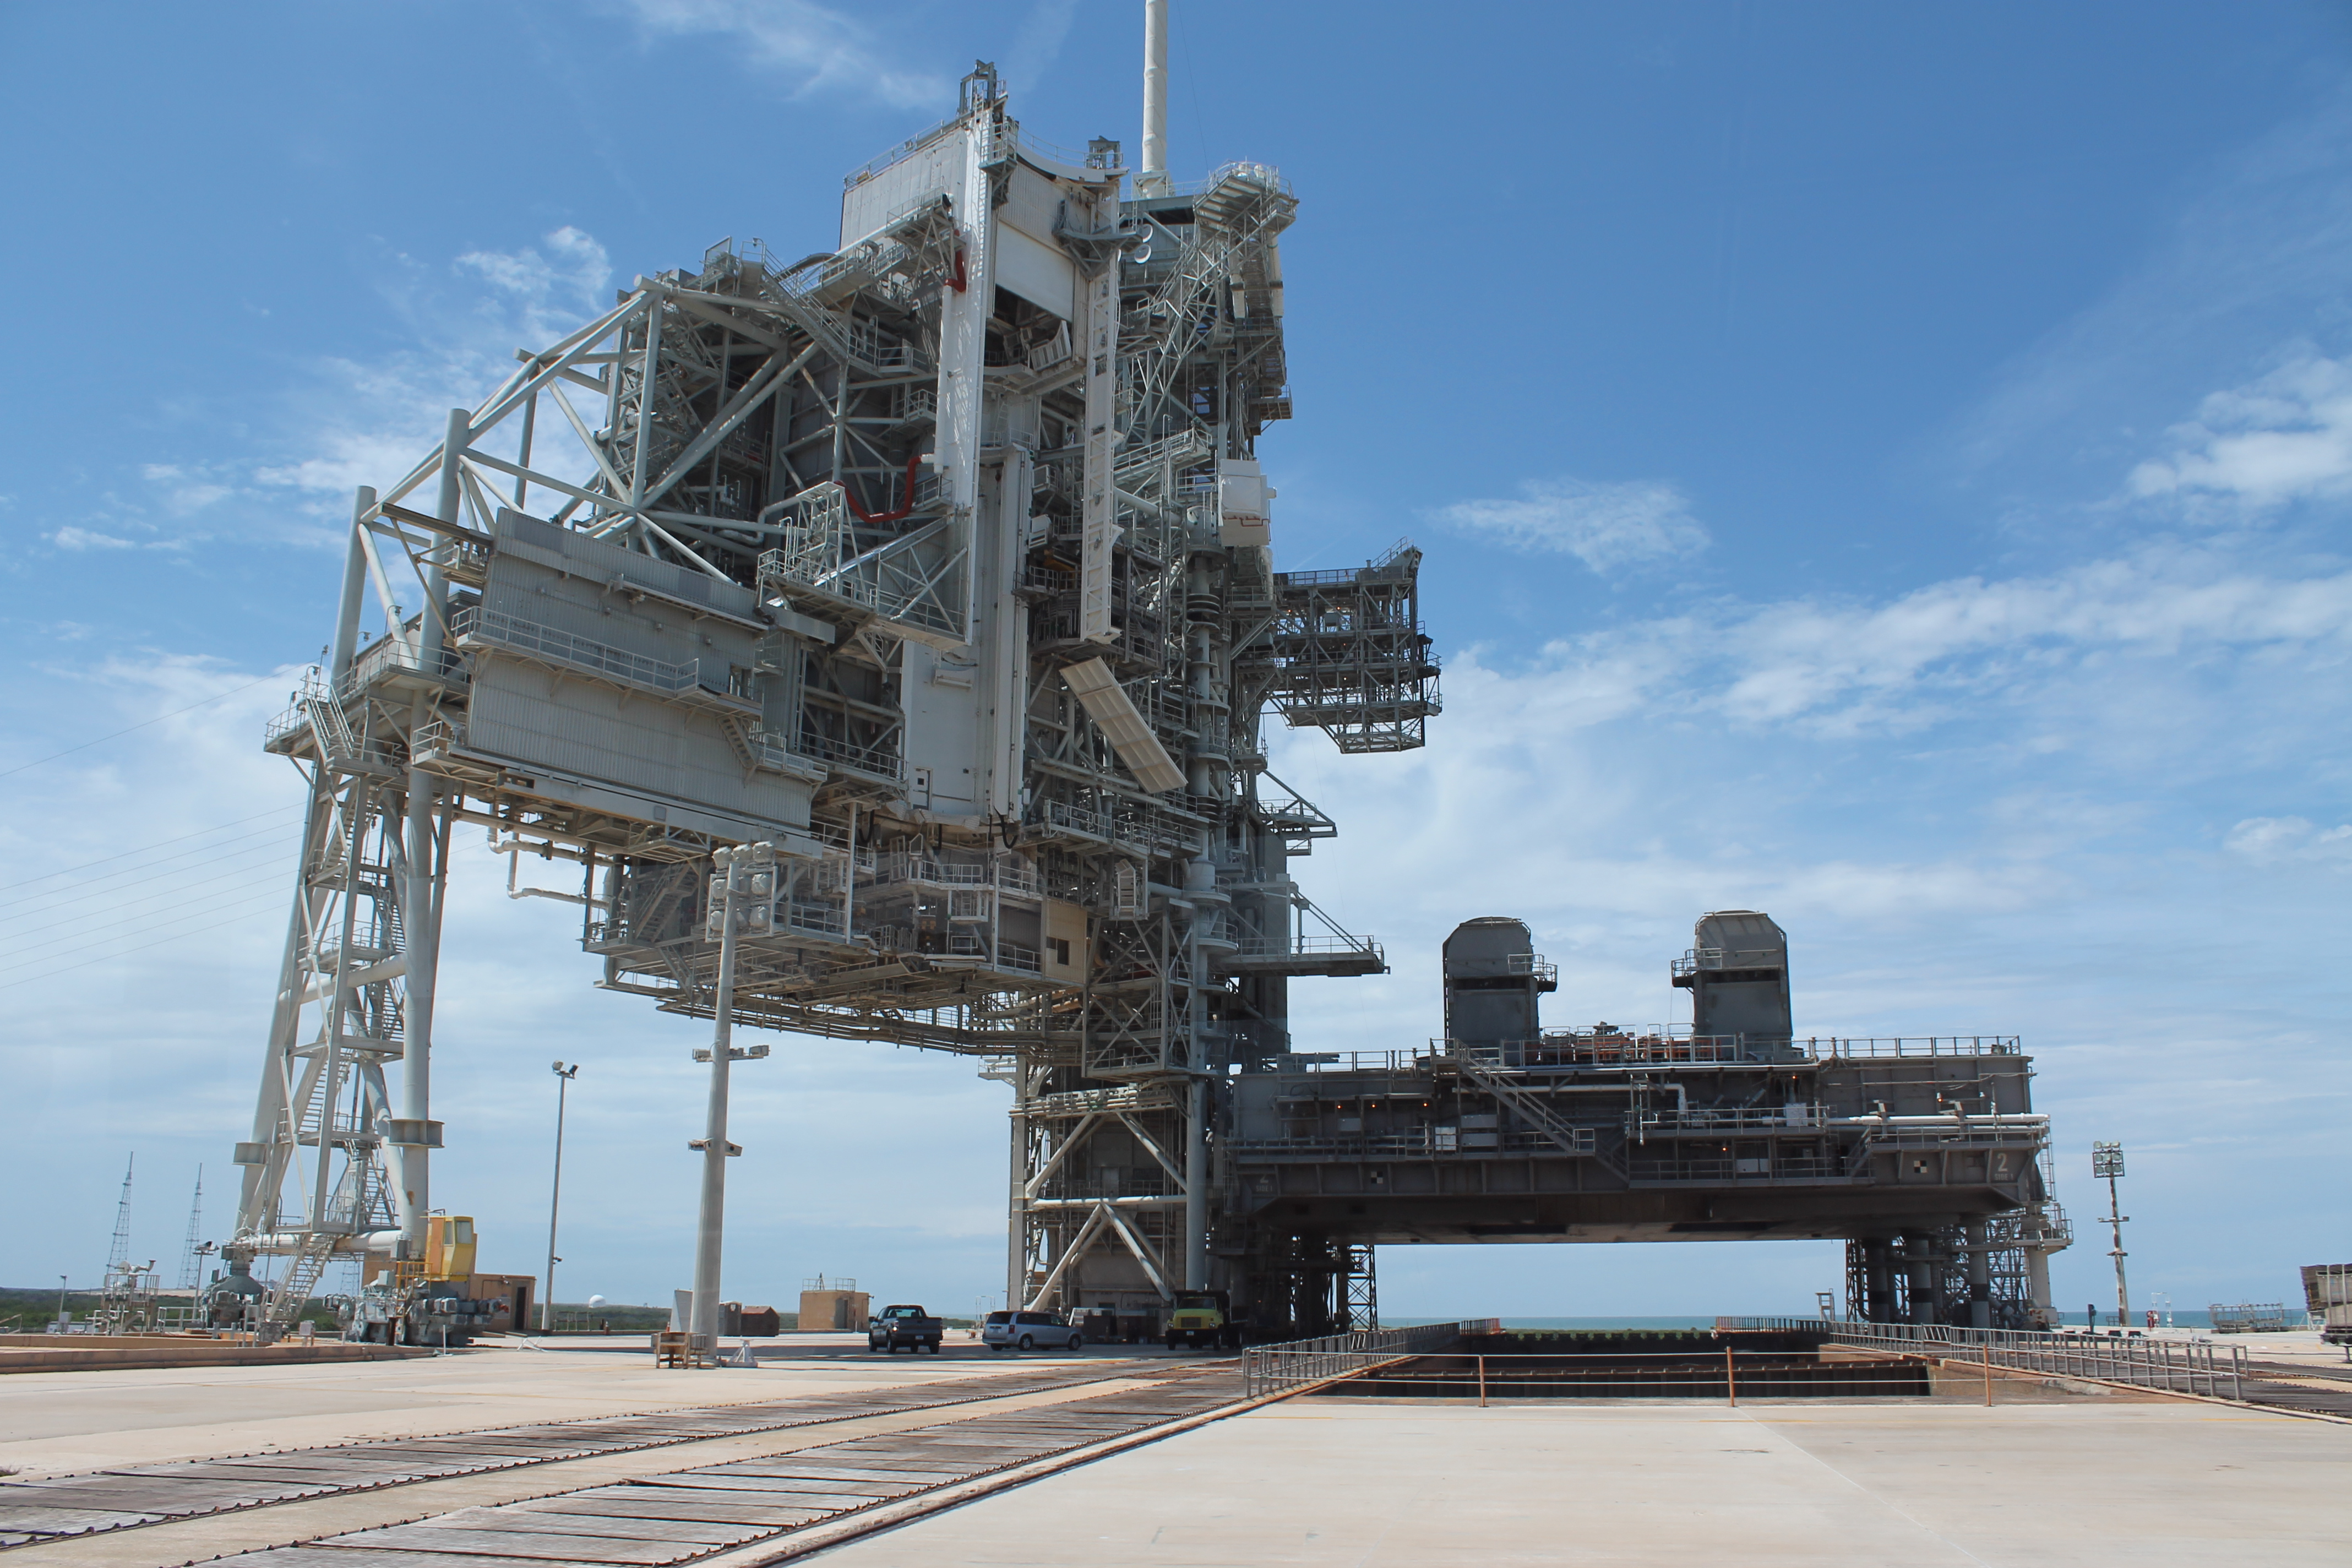 Pad 39A, the world's most famous launchpad.